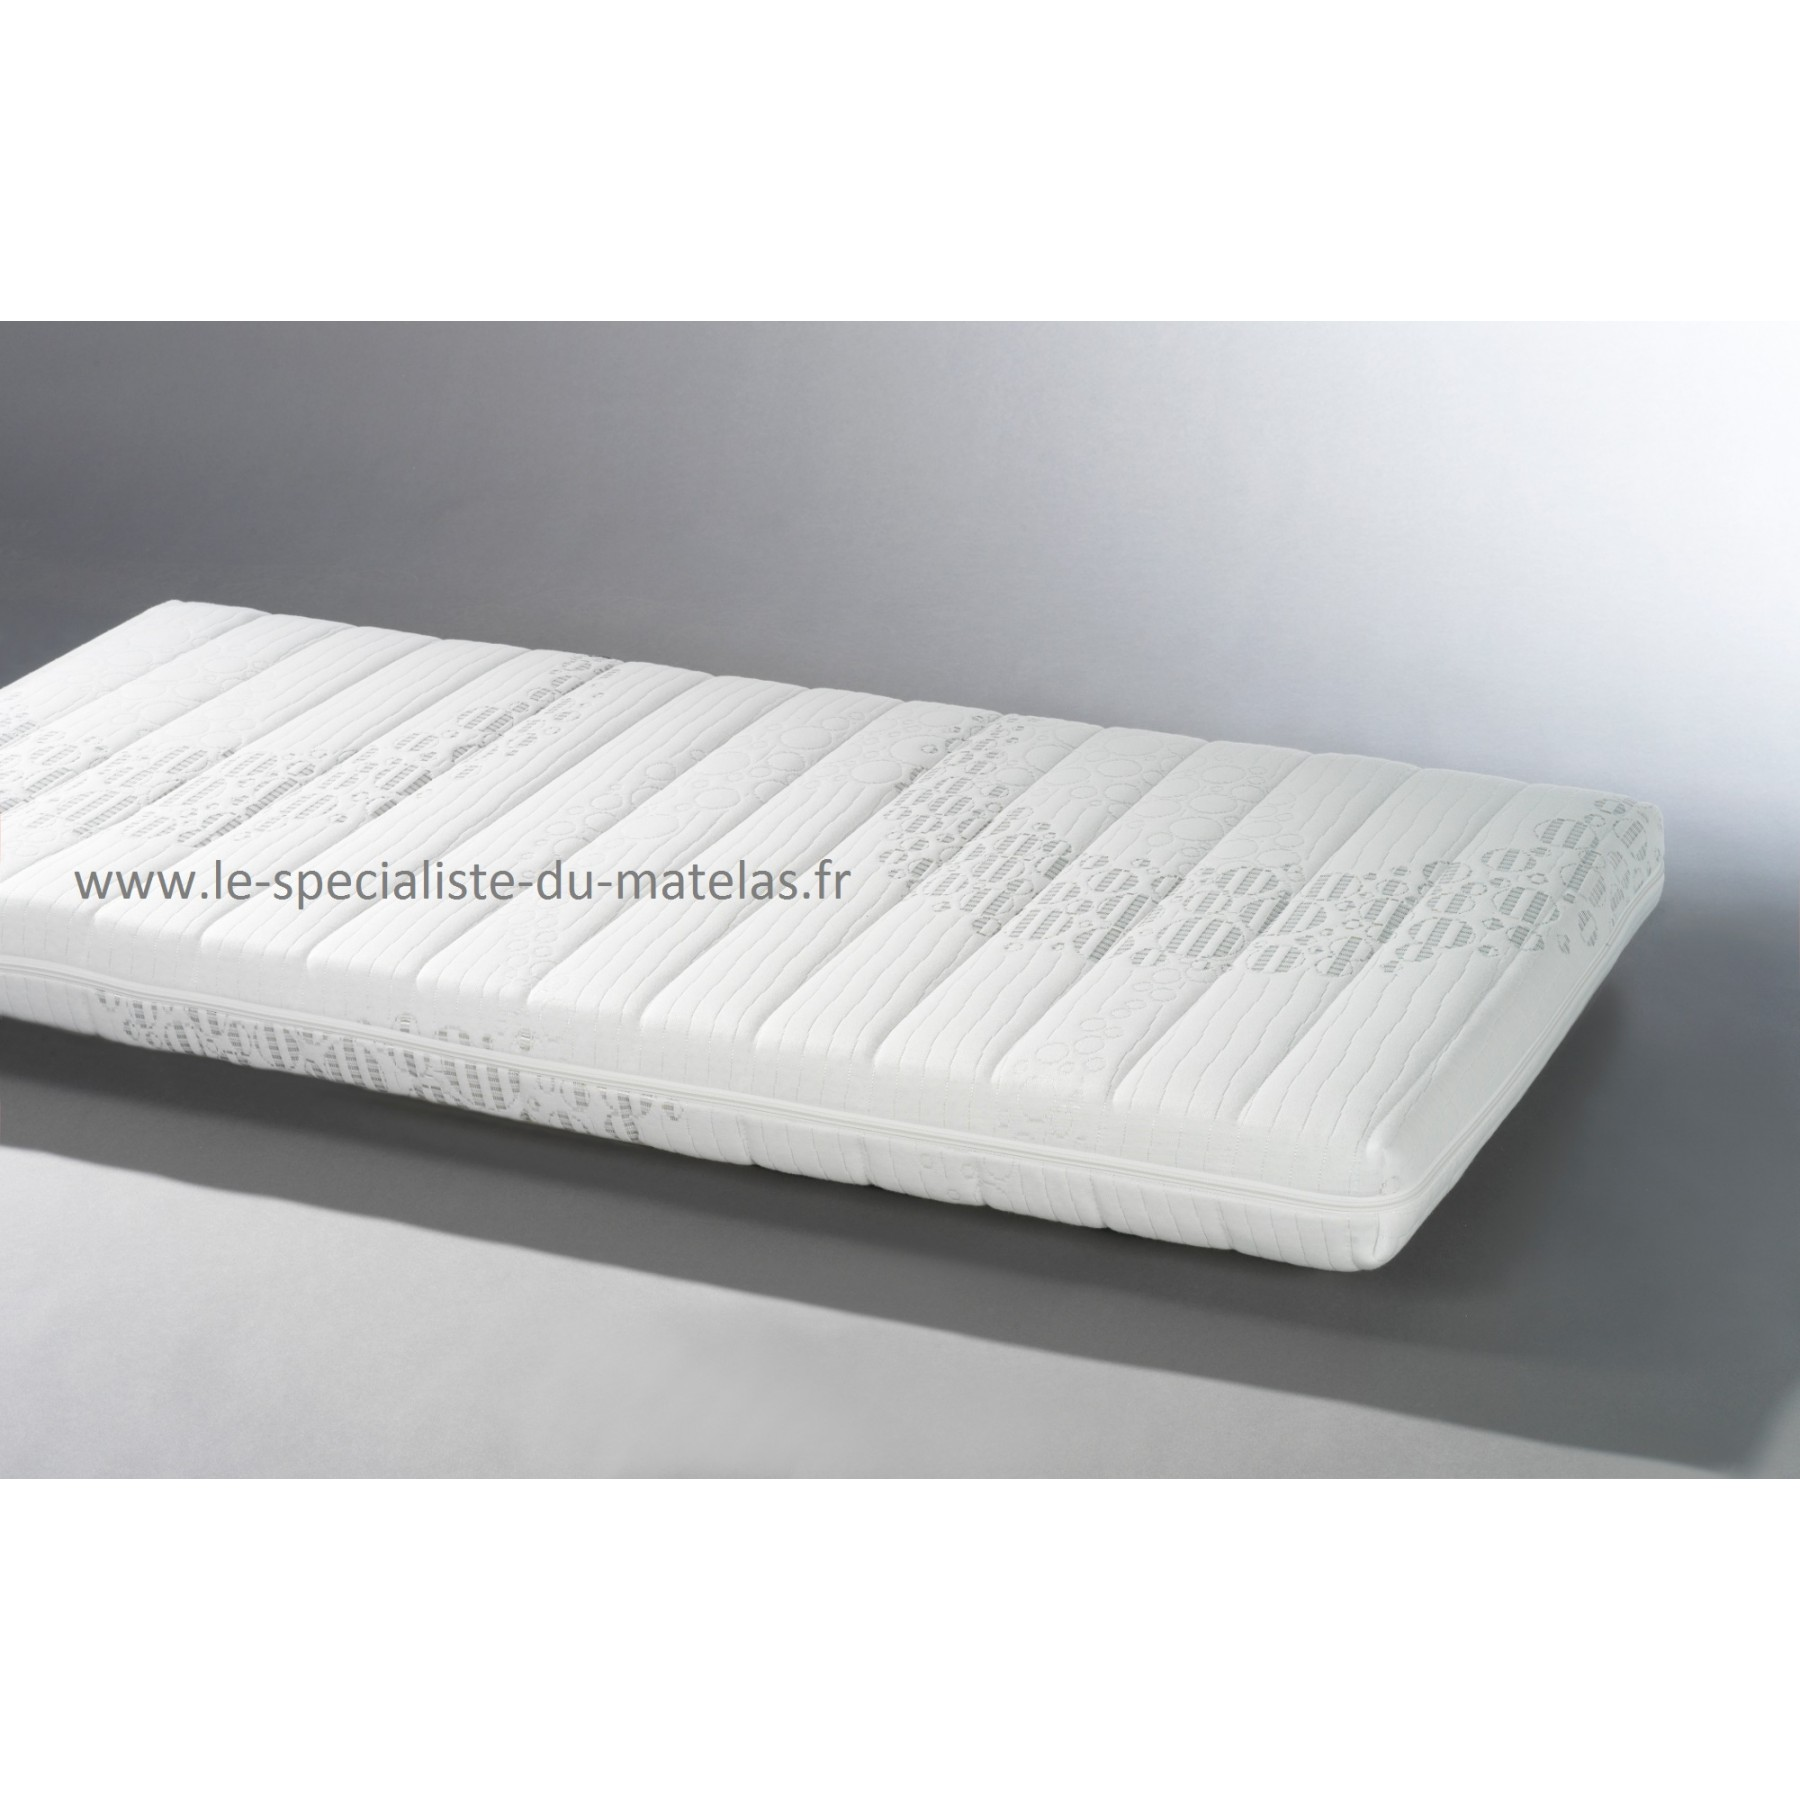 matelas b b en mousse haute r silience le sp cialiste du matelas. Black Bedroom Furniture Sets. Home Design Ideas